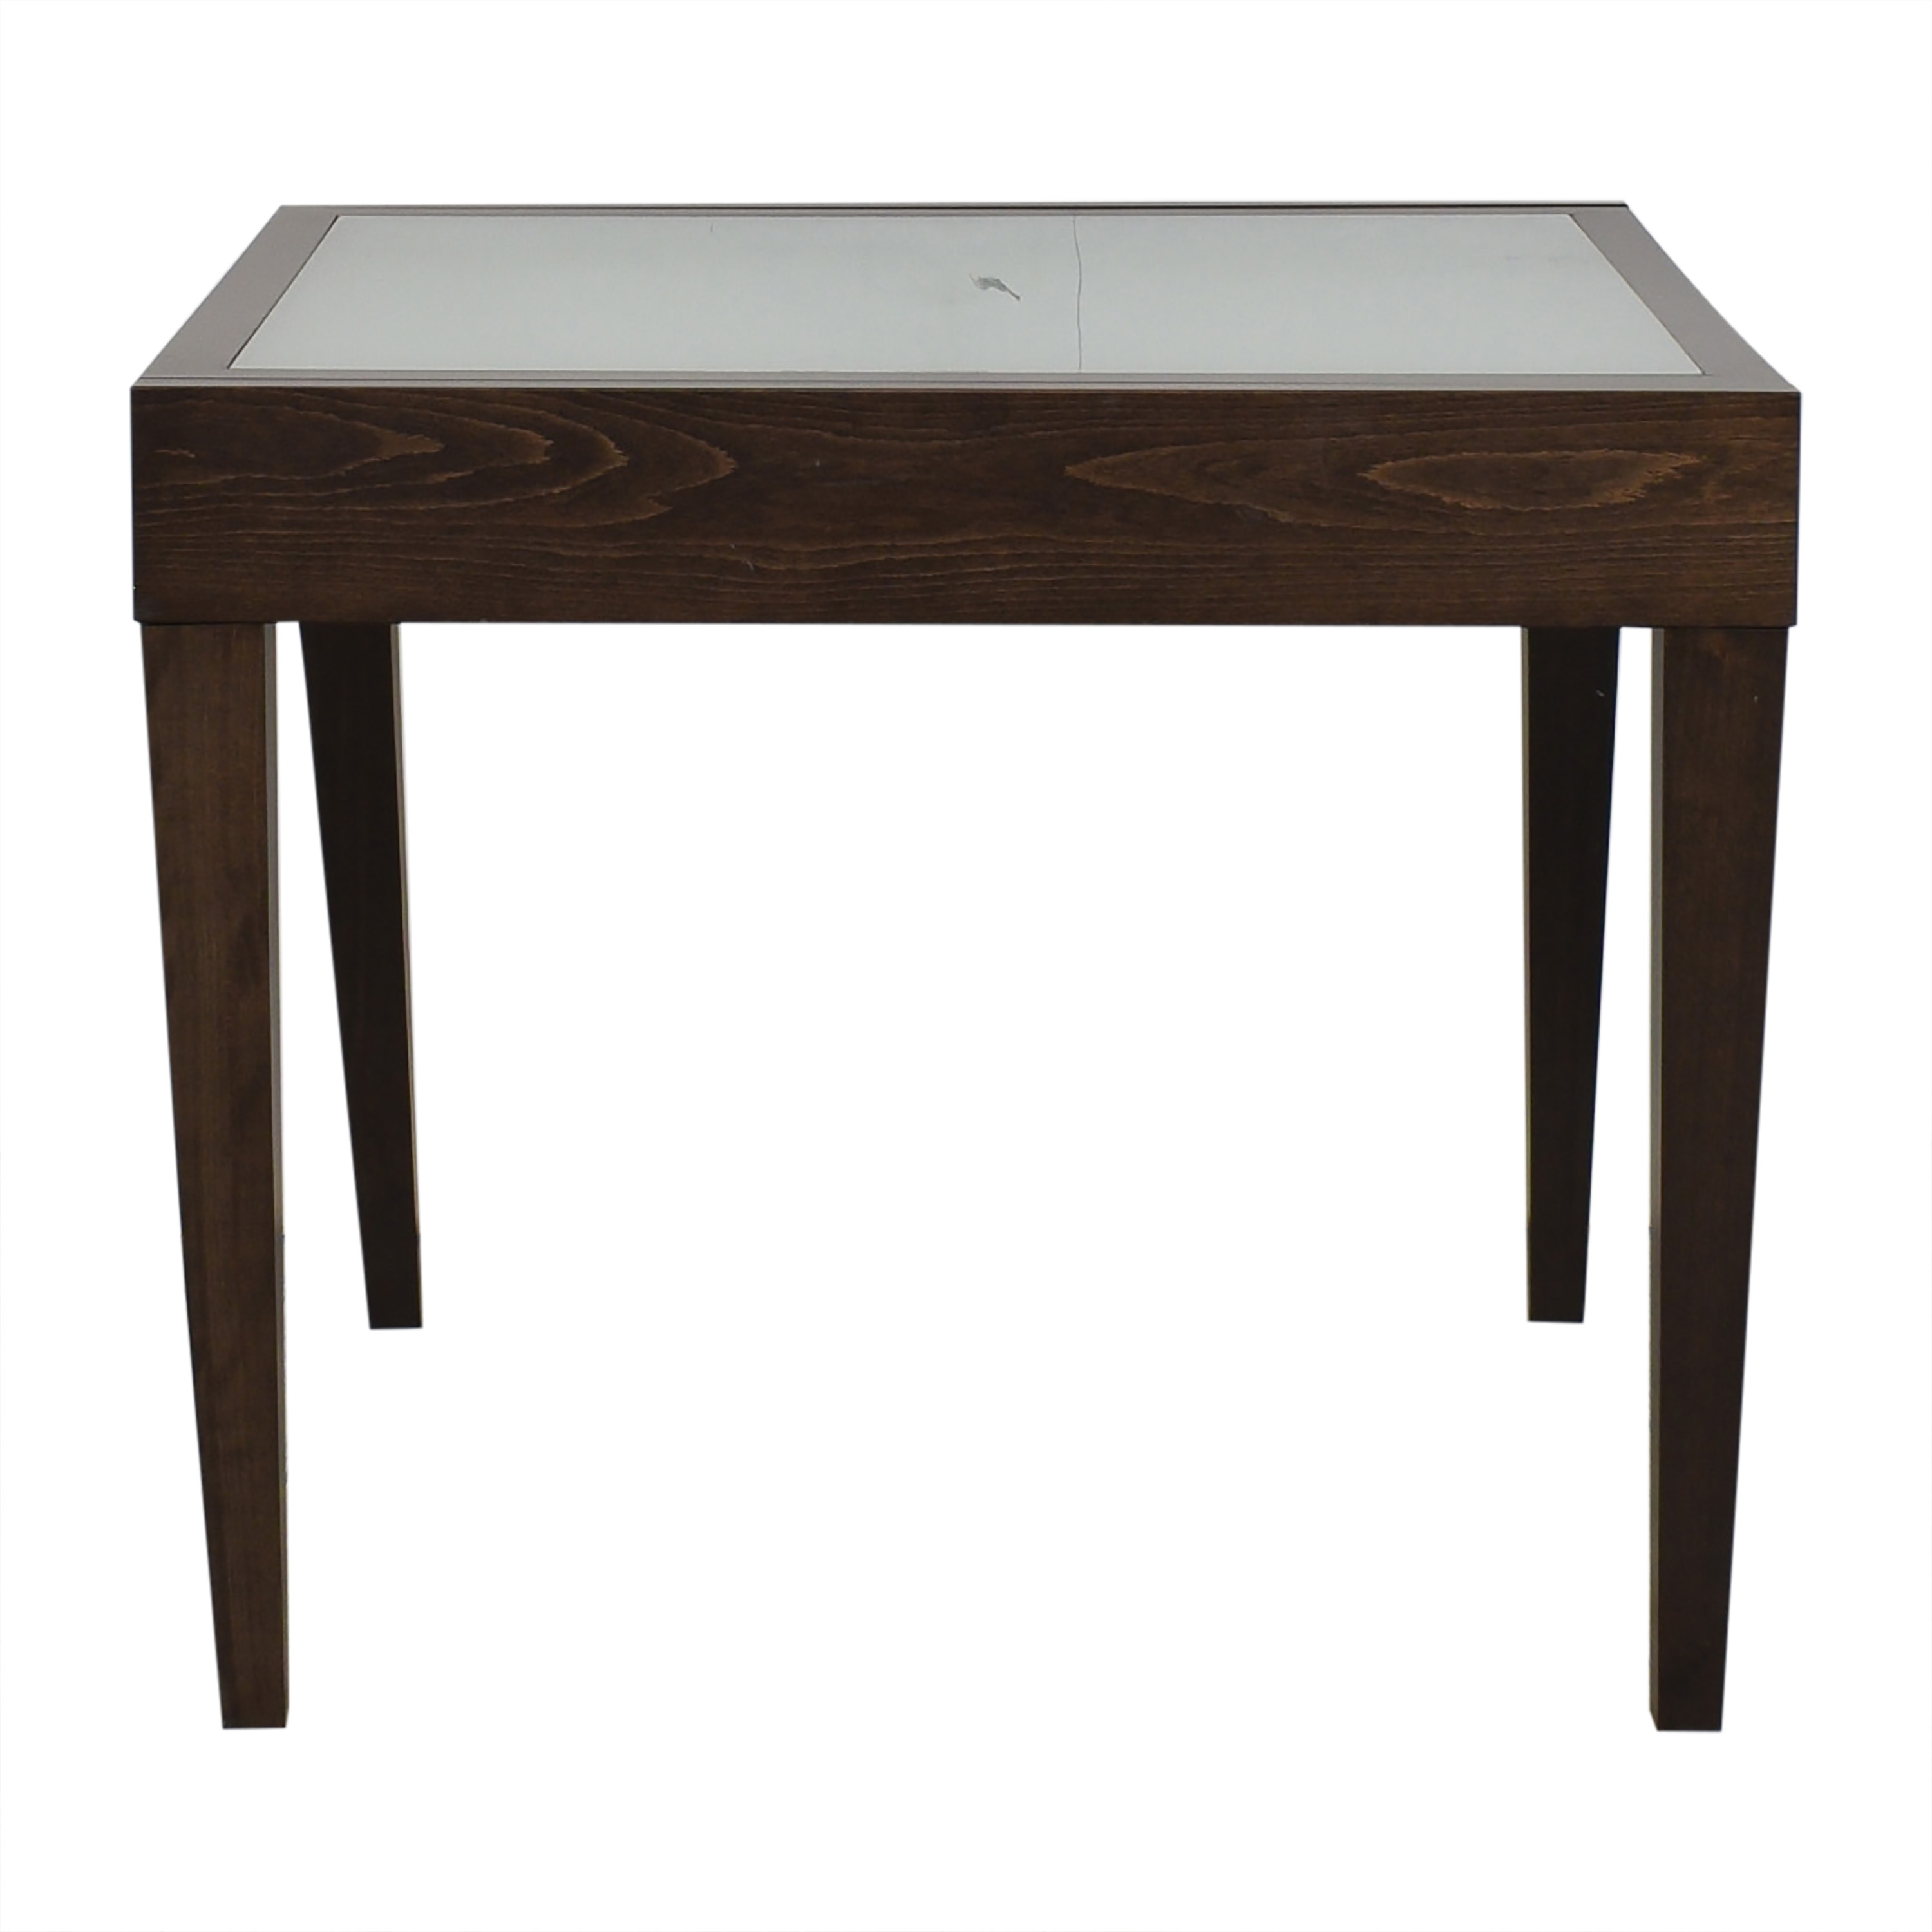 Design Within Reach Design Within Reach Spanna Extending Dining Table dark brown